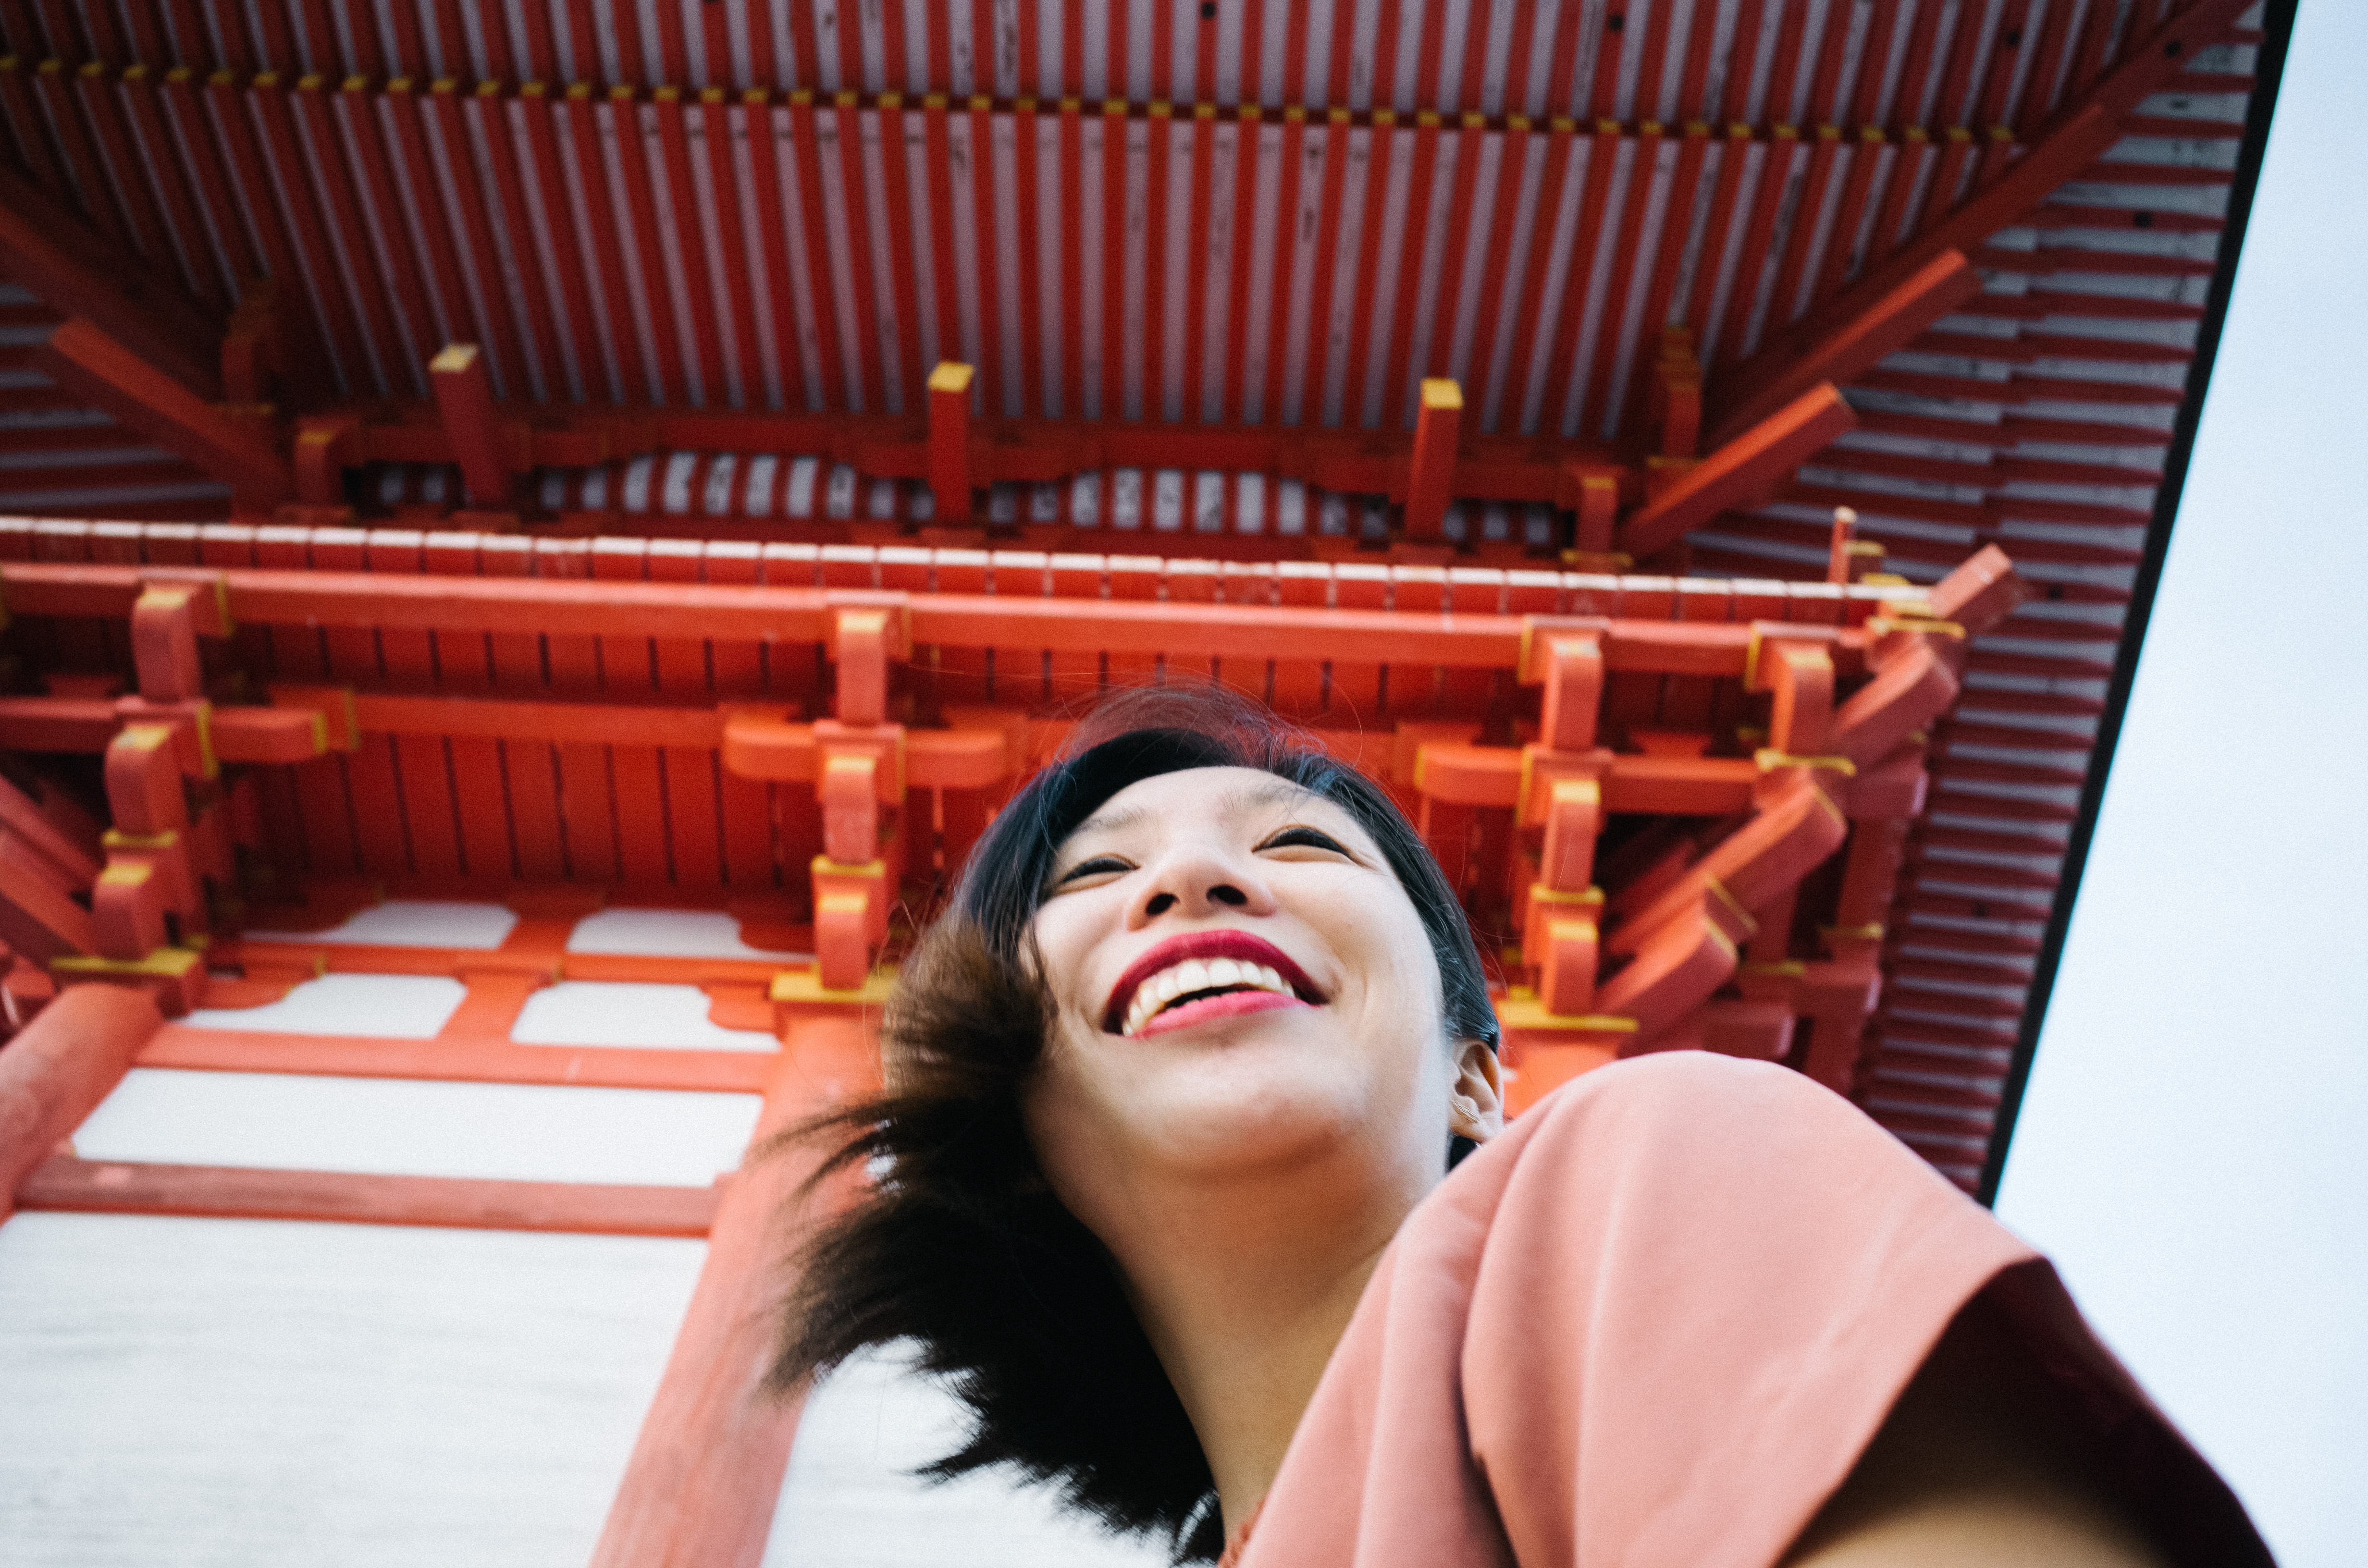 Cindy laughing at red shrine. Kyoto, 2017.